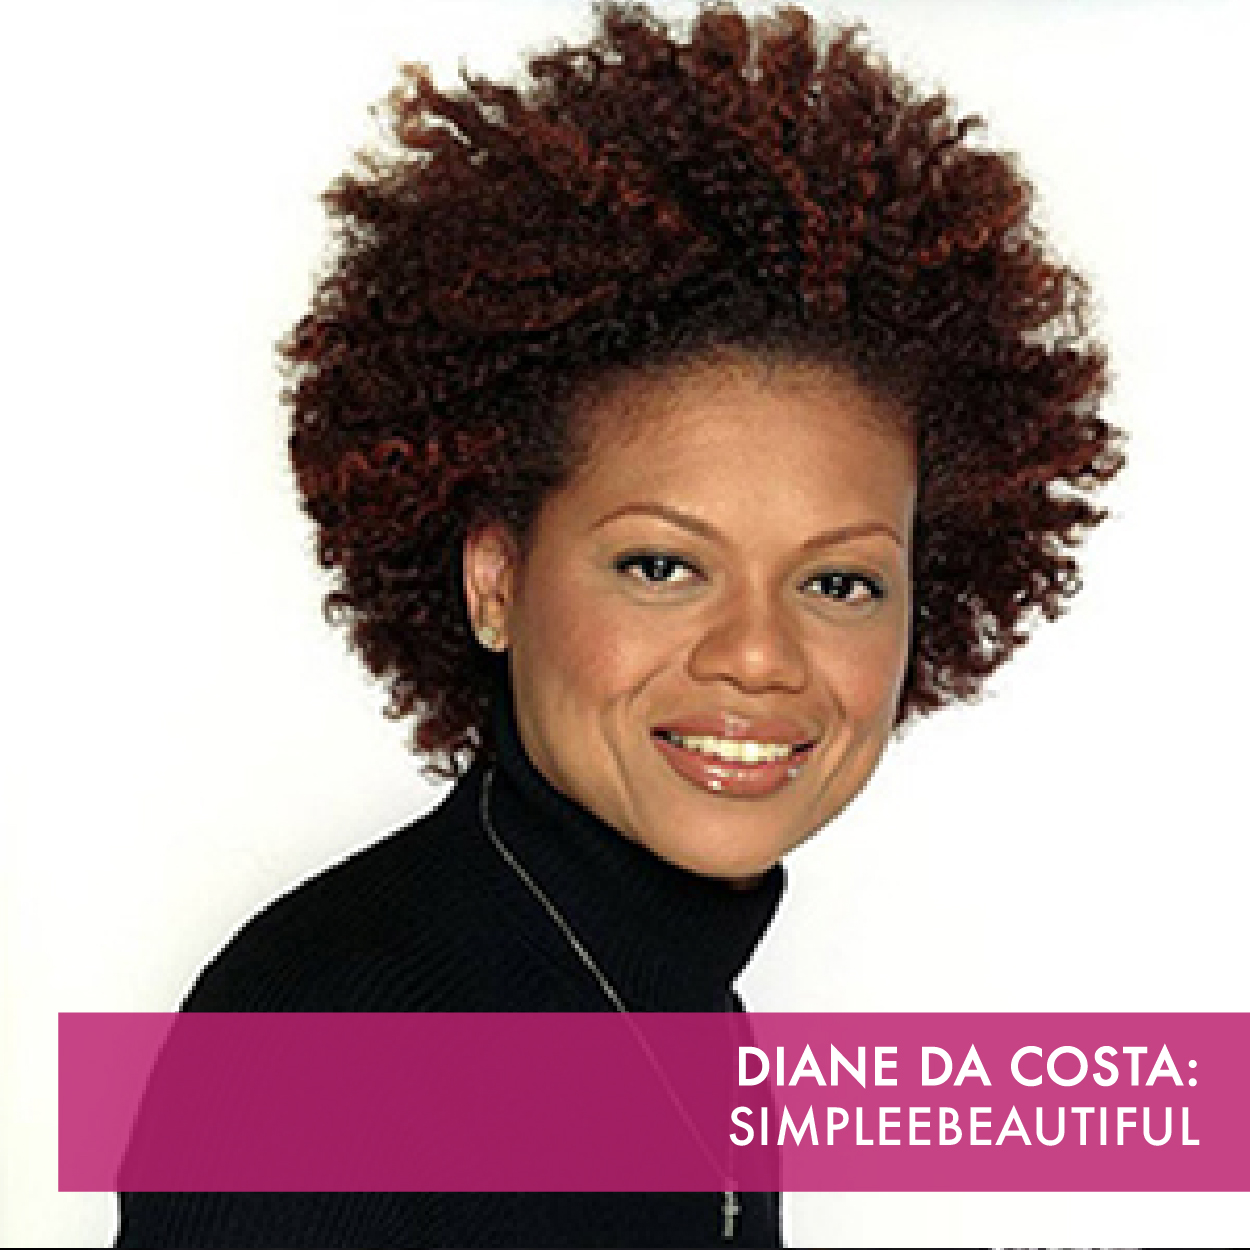 SimpleeBEAUTIFUL is a full service hair salon and luxury product retailer. Whether straight, wavy, curly, or coiled, the salon looks to restore all hair textures to its ultimate healthy nature.